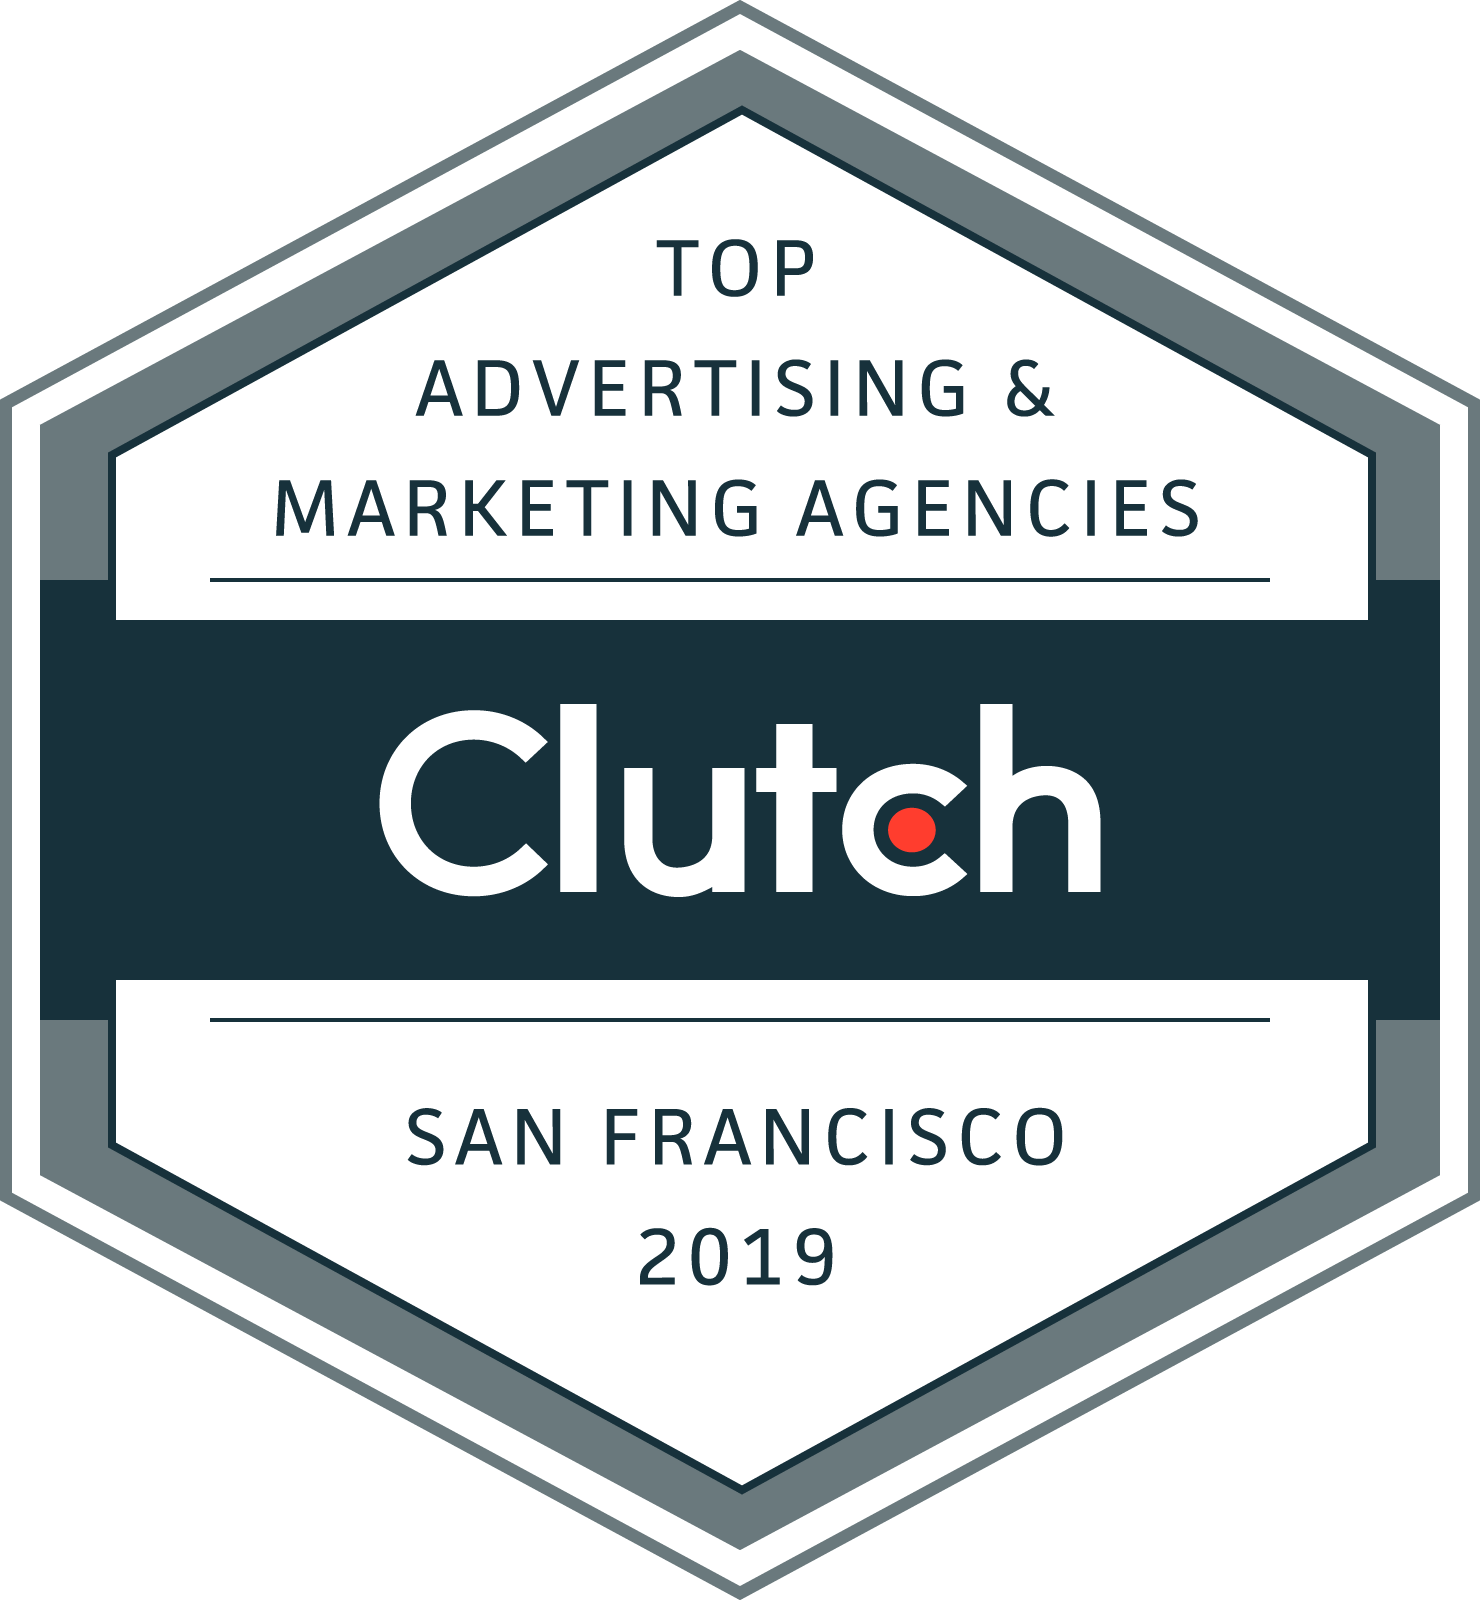 Clutch Top Marketing Agency Bay Area- Level Up Digital